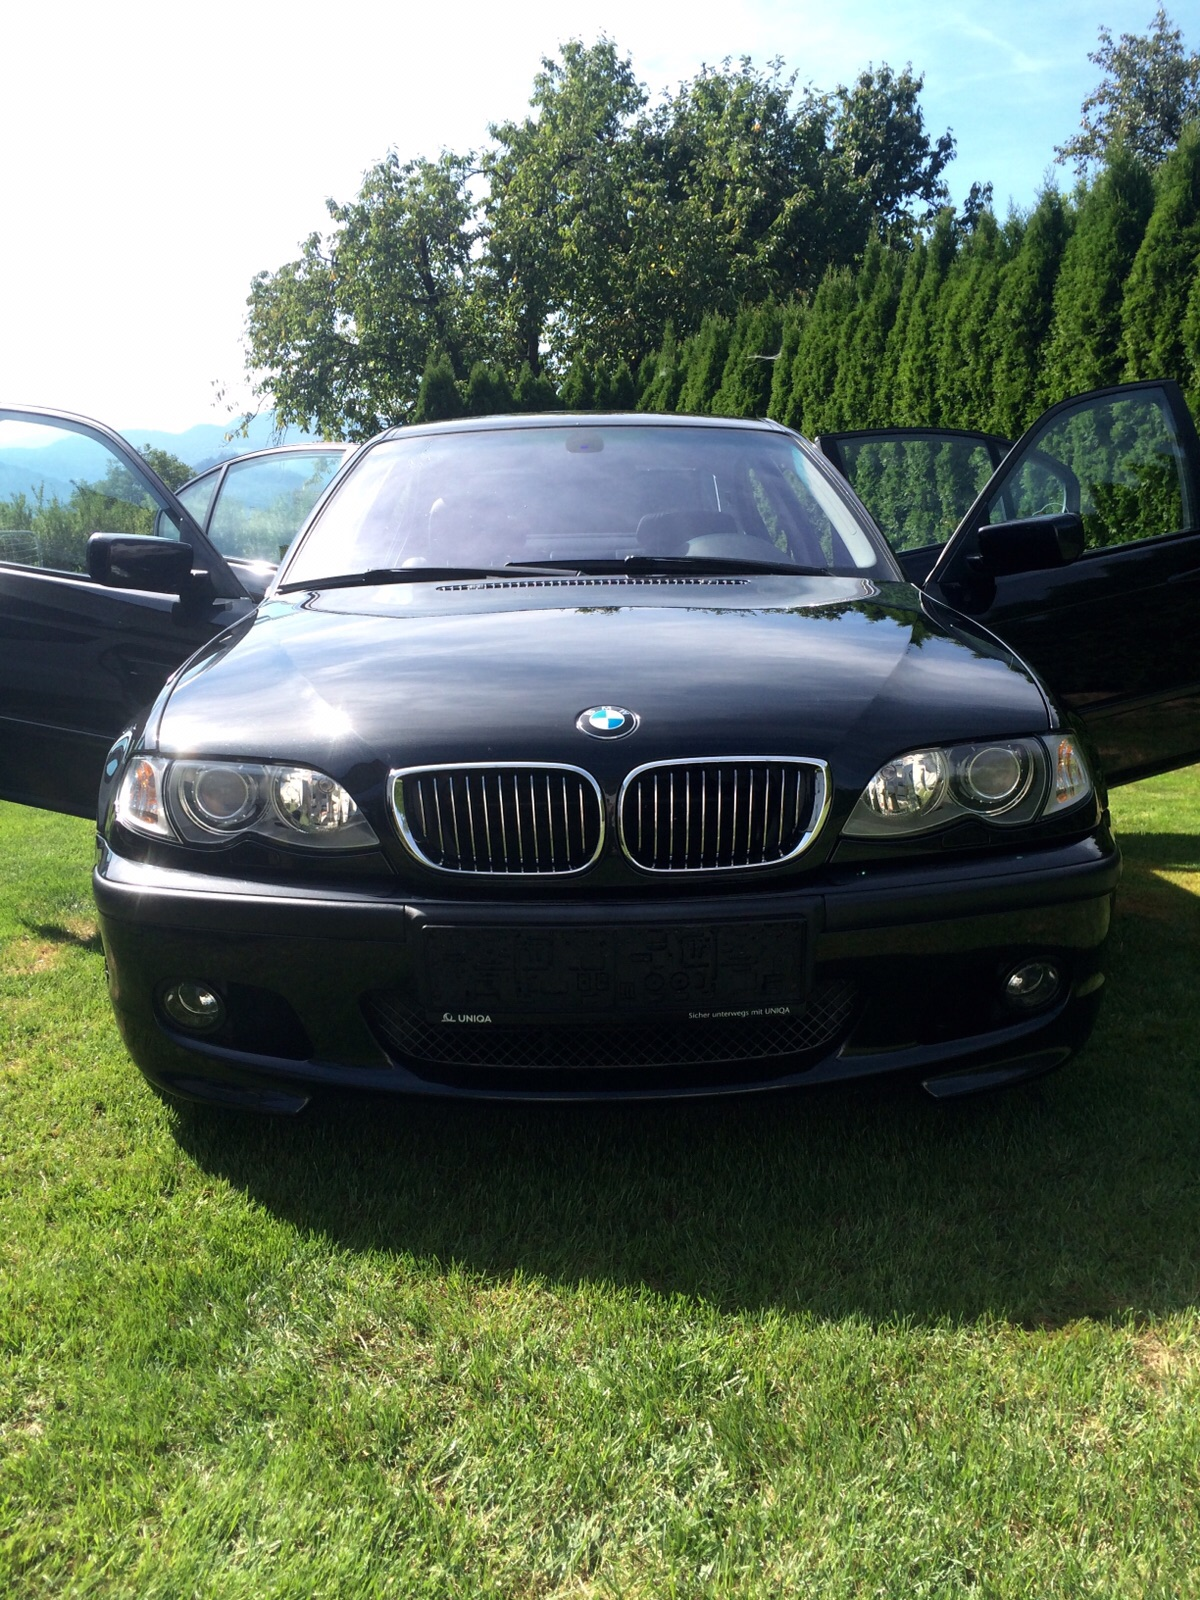 Null Zps B C further Zf Hp likewise V Qd as well Rpm Chrome besides Bmw Used Car Review. on 2006 bmw 330i hp